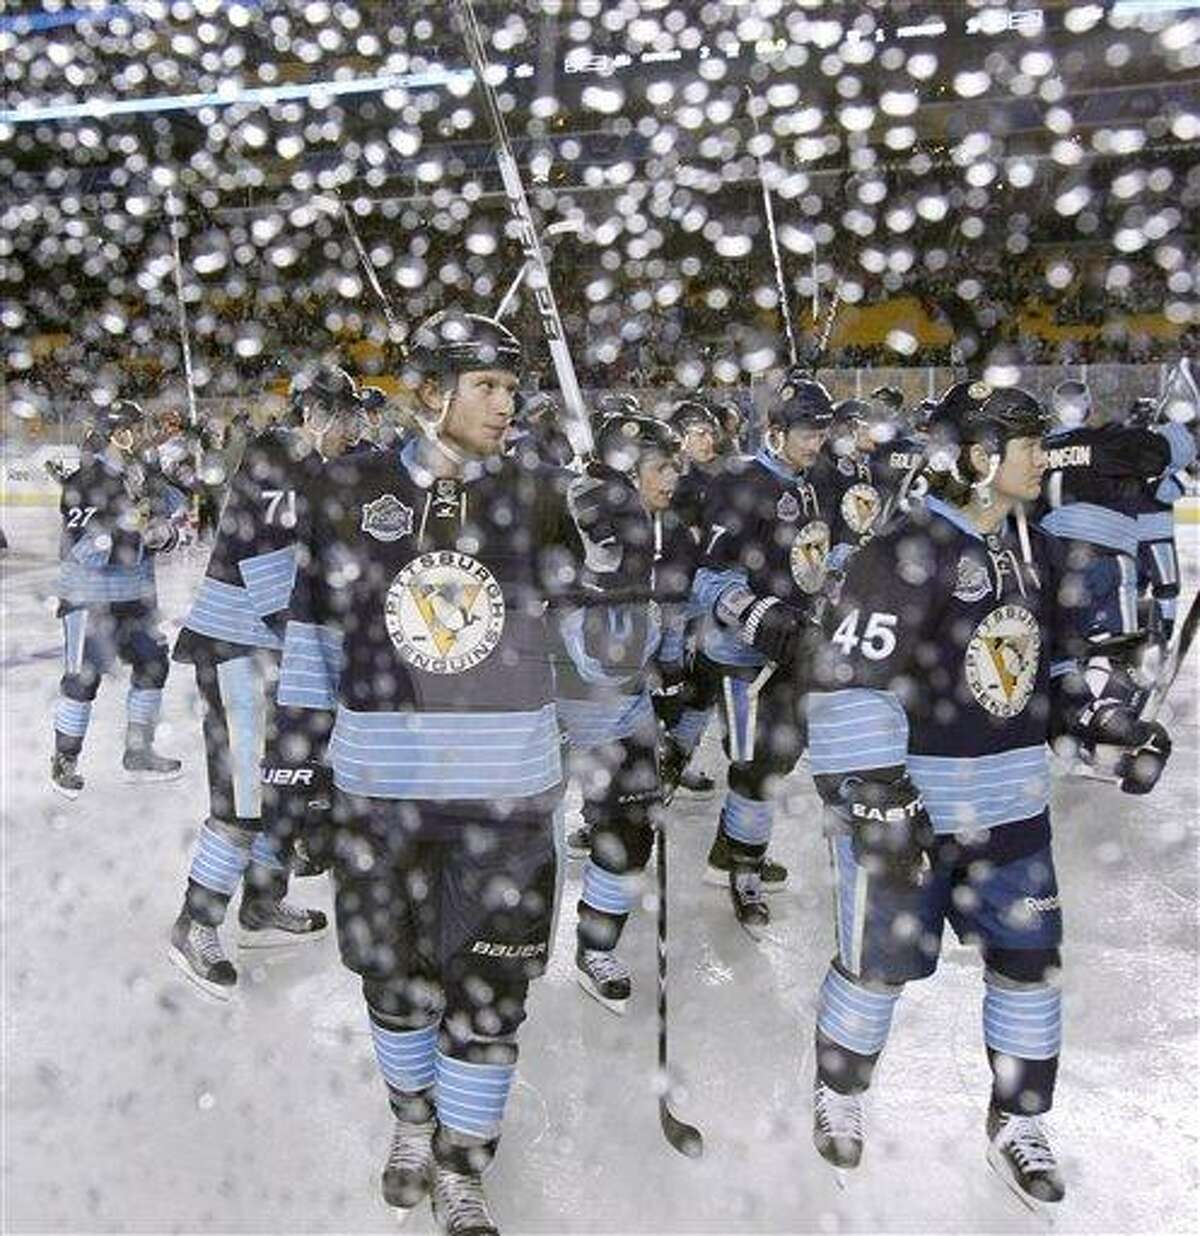 Pittsburgh Penguins' Jordan Staal, center, is seen through the raindrop covered glass bordering the rink as he and the team raise their sticks in tribute to the fans after the third period of the NHL Winter Classic outdoor hockey game in Pittsburgh on Saturday, Jan. 1, 2011. The Washington Capitals won 3-1. (AP Photo/Keith Srakocic)